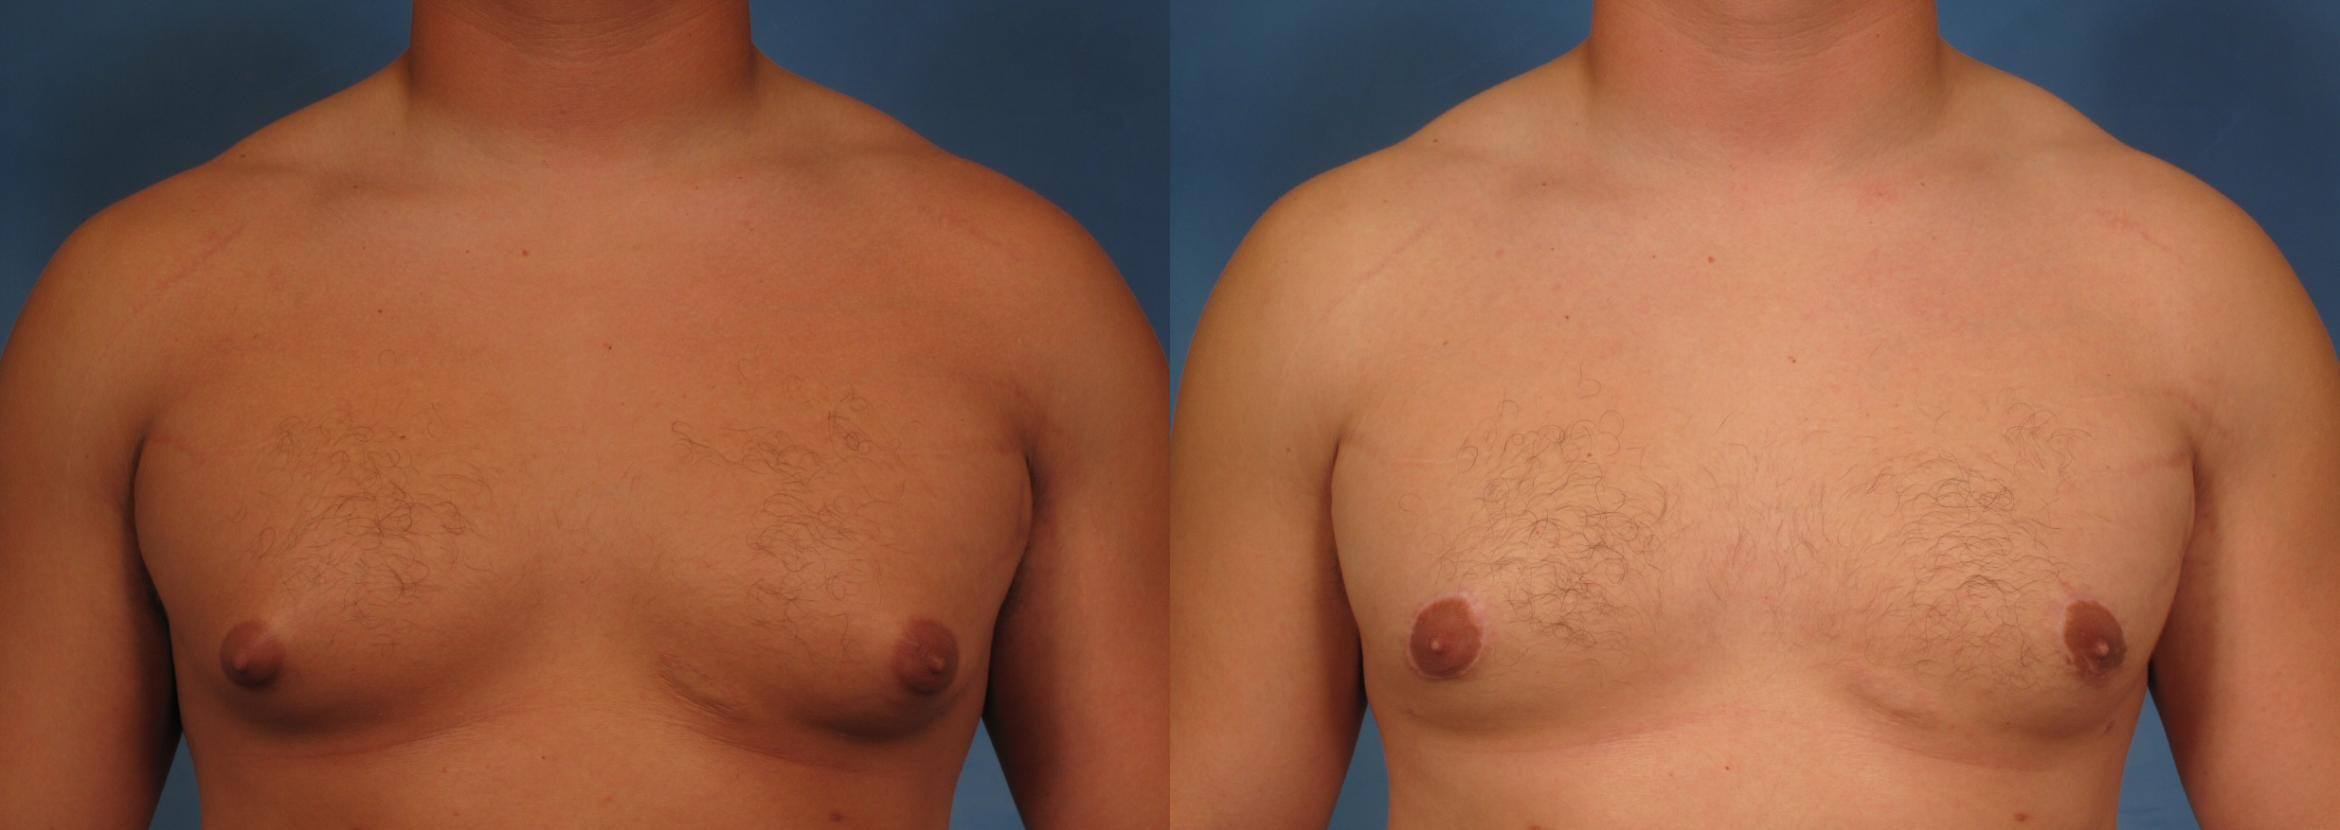 Liposuction Case 177 Before & After View #1 | Naples, FL | Kent V. Hasen, M.D.